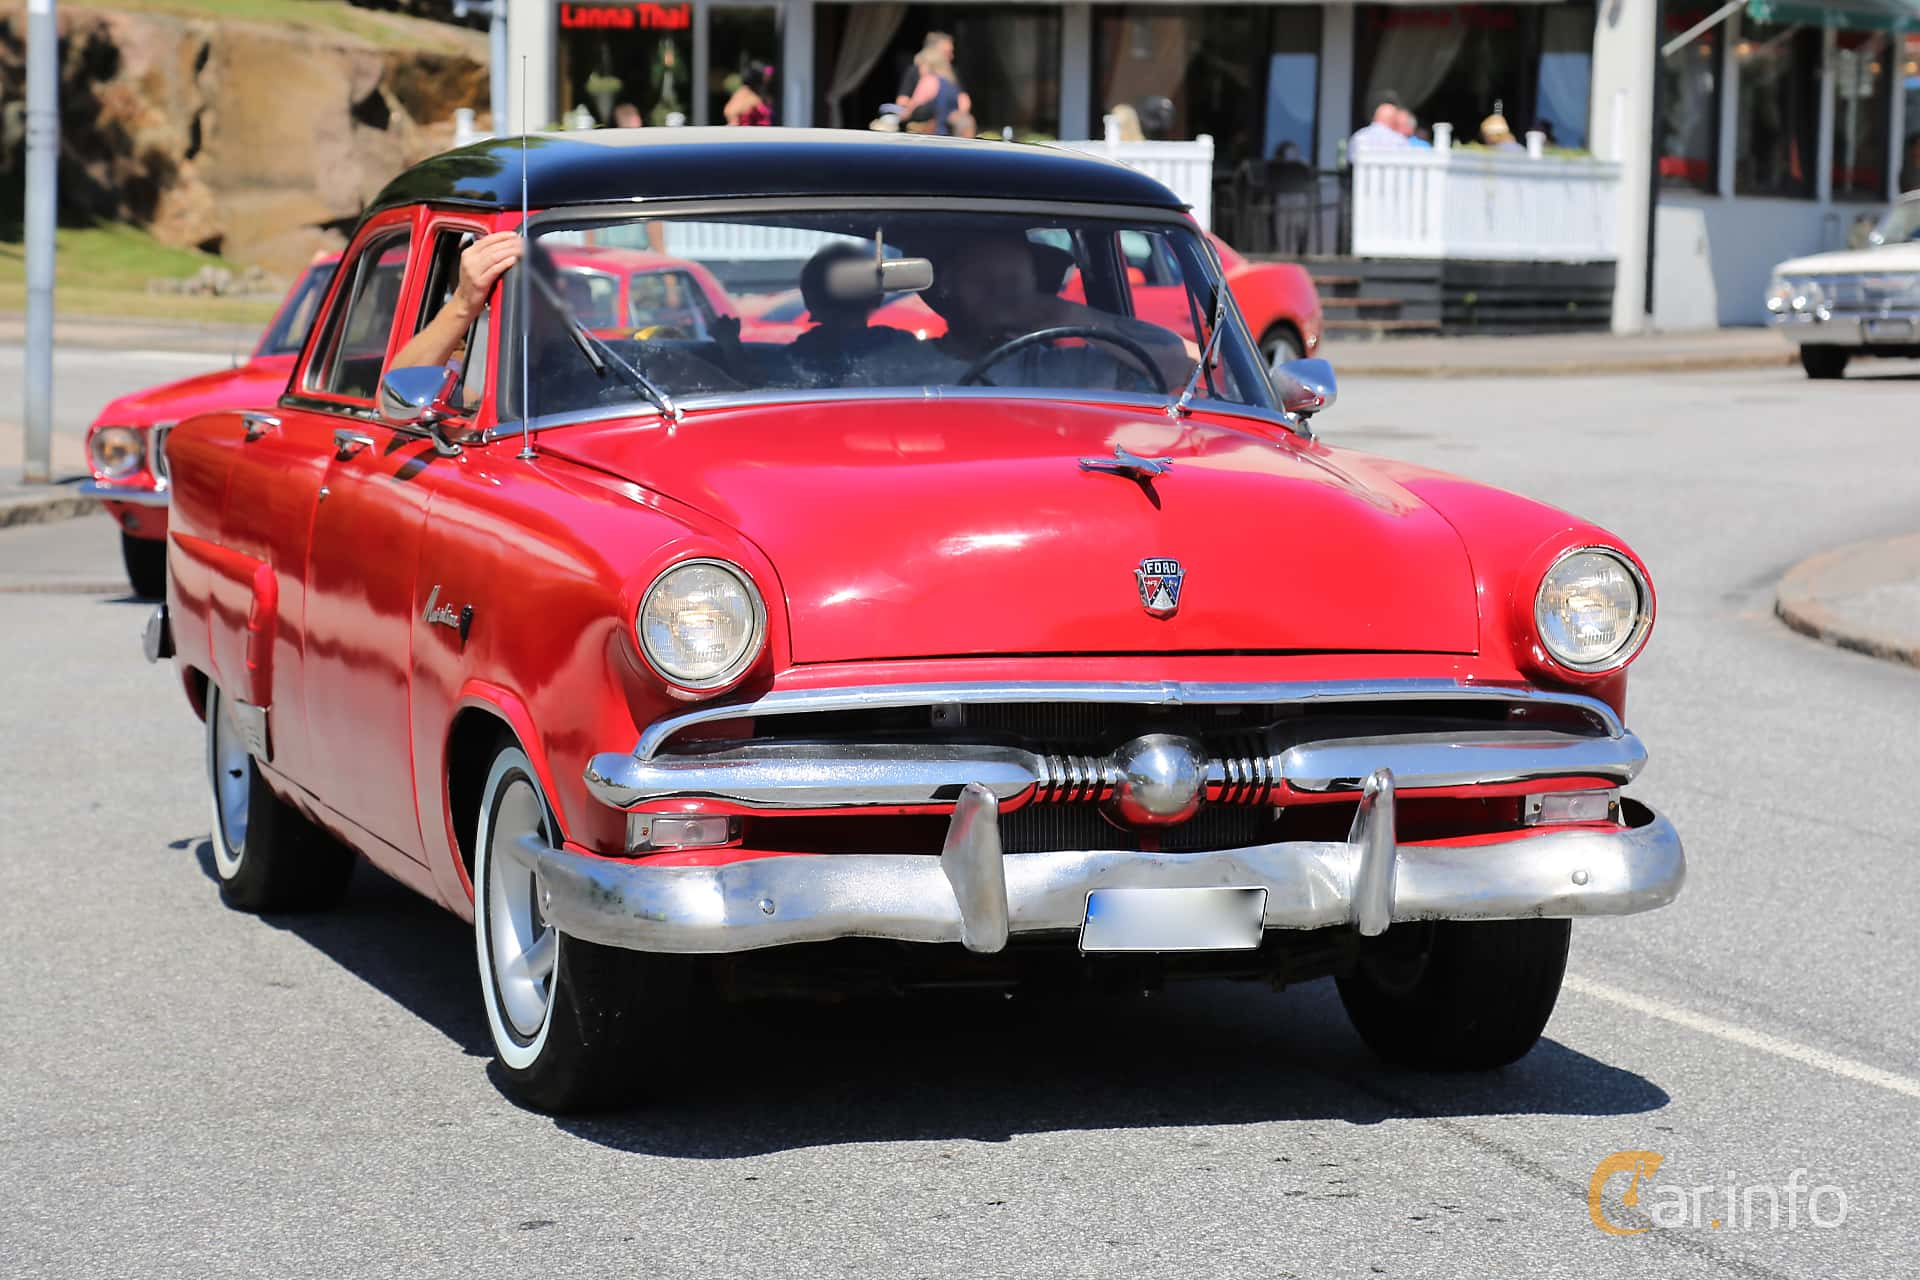 Ford Mainline Fordor Sedan 3.9 V8 Manual, 112hp, 1953 at Cruising Lysekil 2018